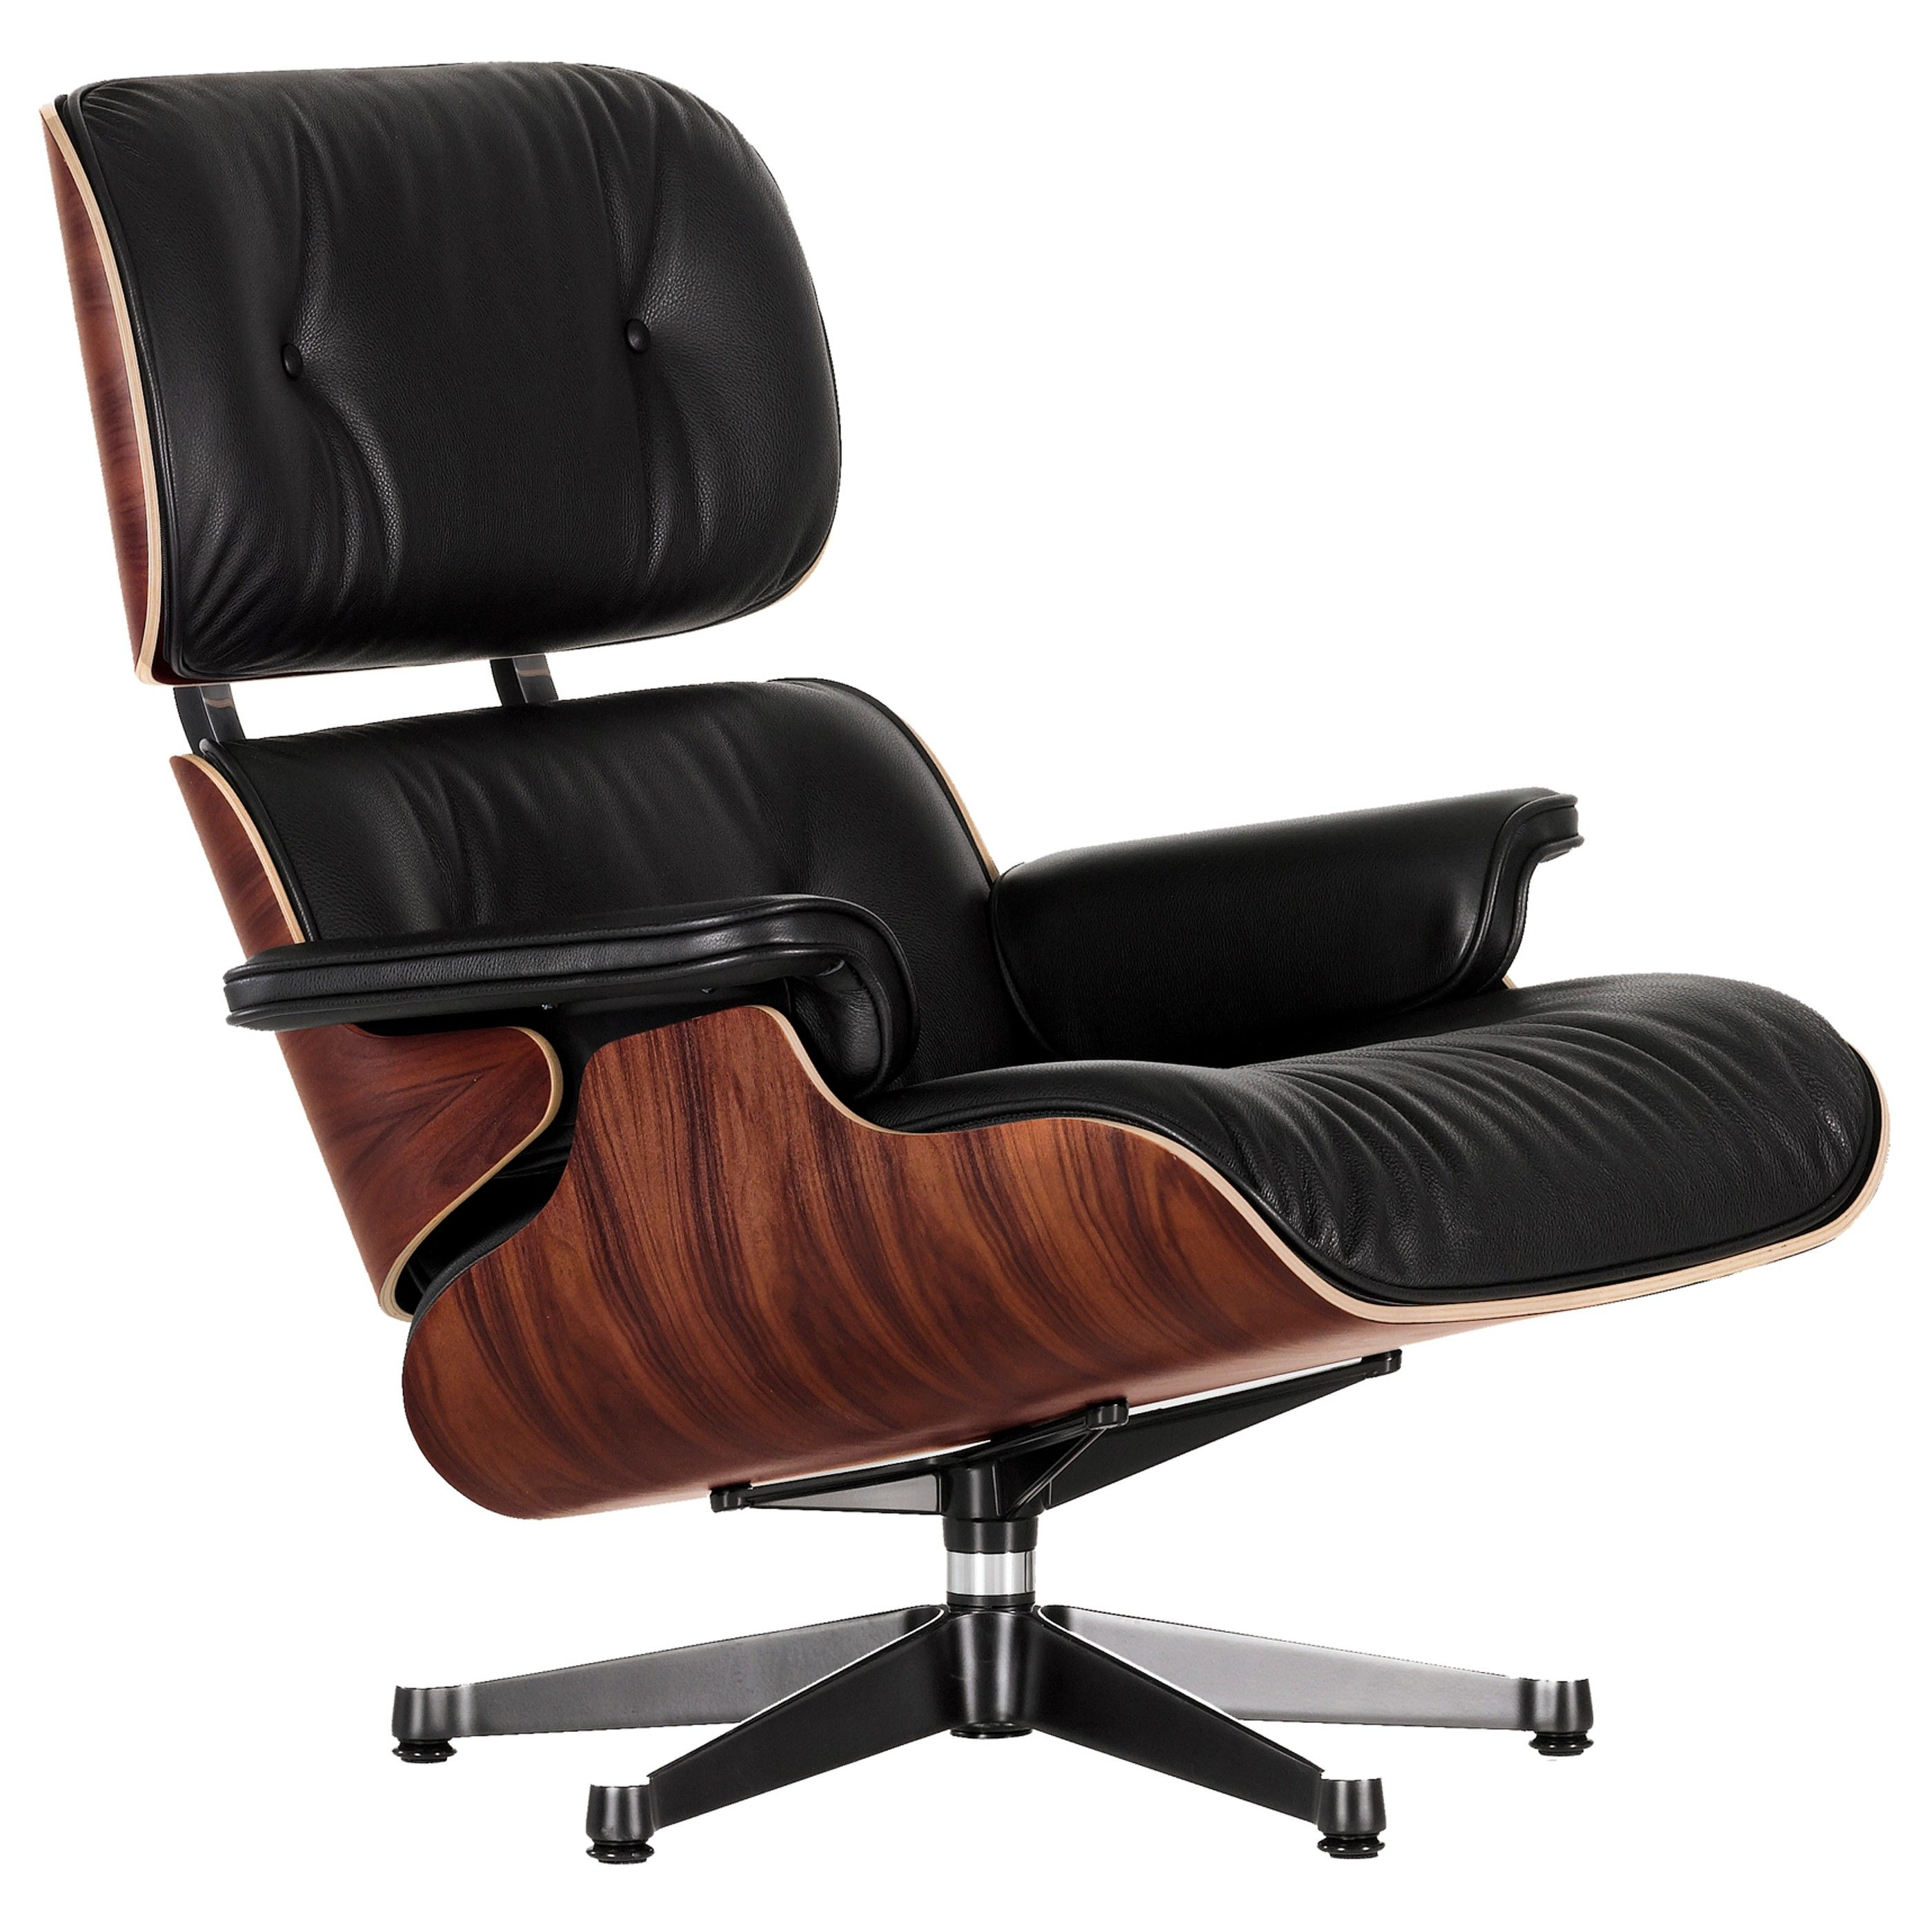 Eames Lounge Chair Zubehör Vitra Eames Lounge Chair Sessel Santos Palisander